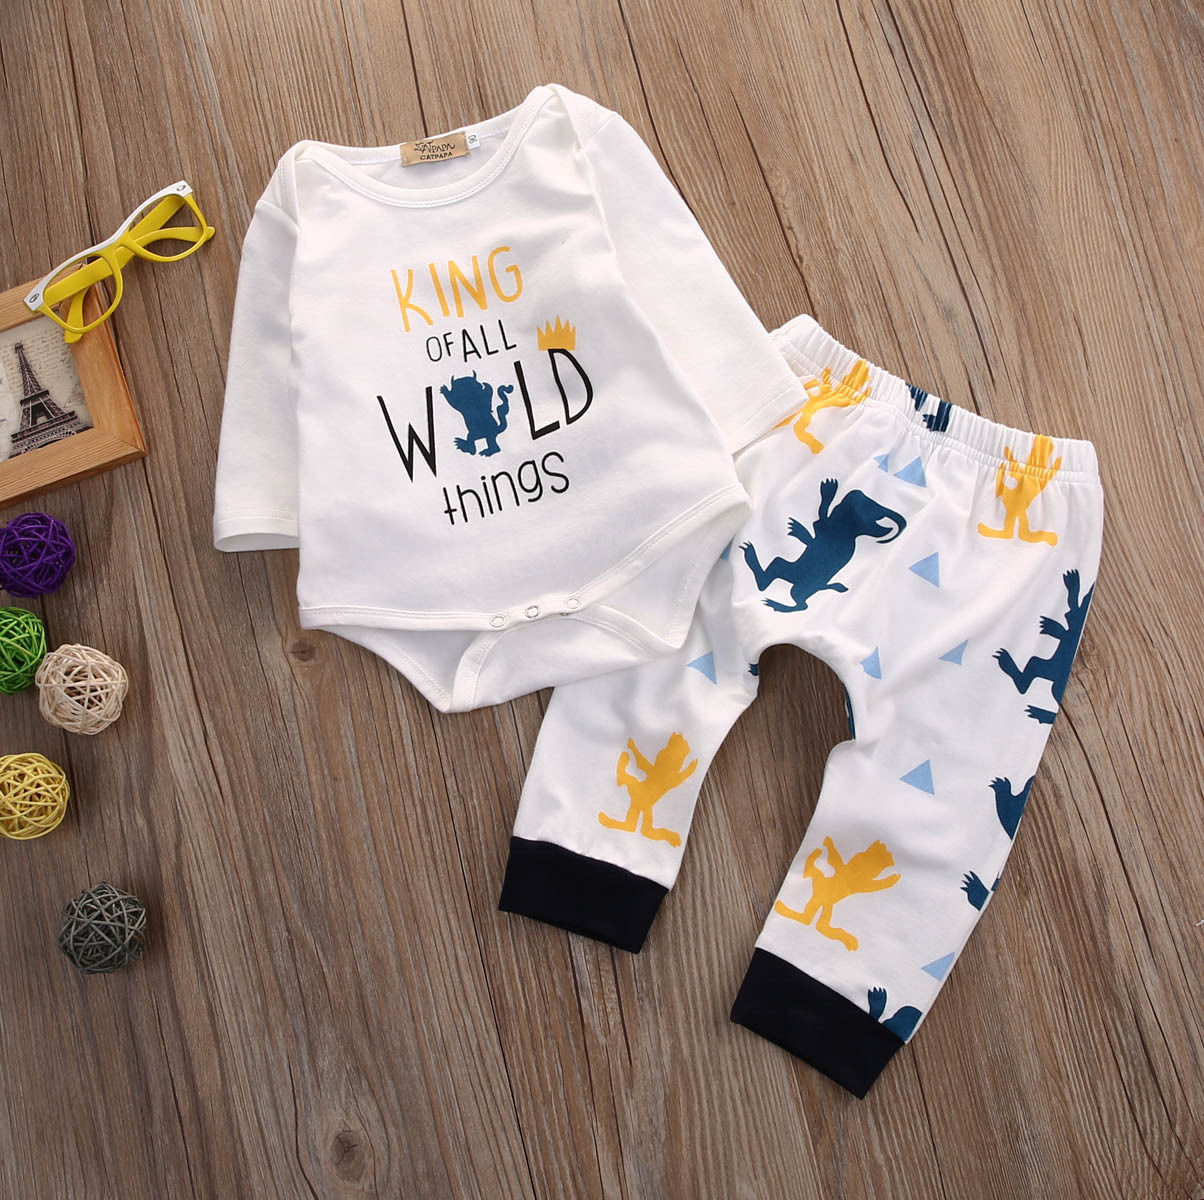 Newborn Baby Boy Clothing Long Sleeve Top Pants Leggings Outfits Ems Adjustable Headband Army Camo For Earmuff Set